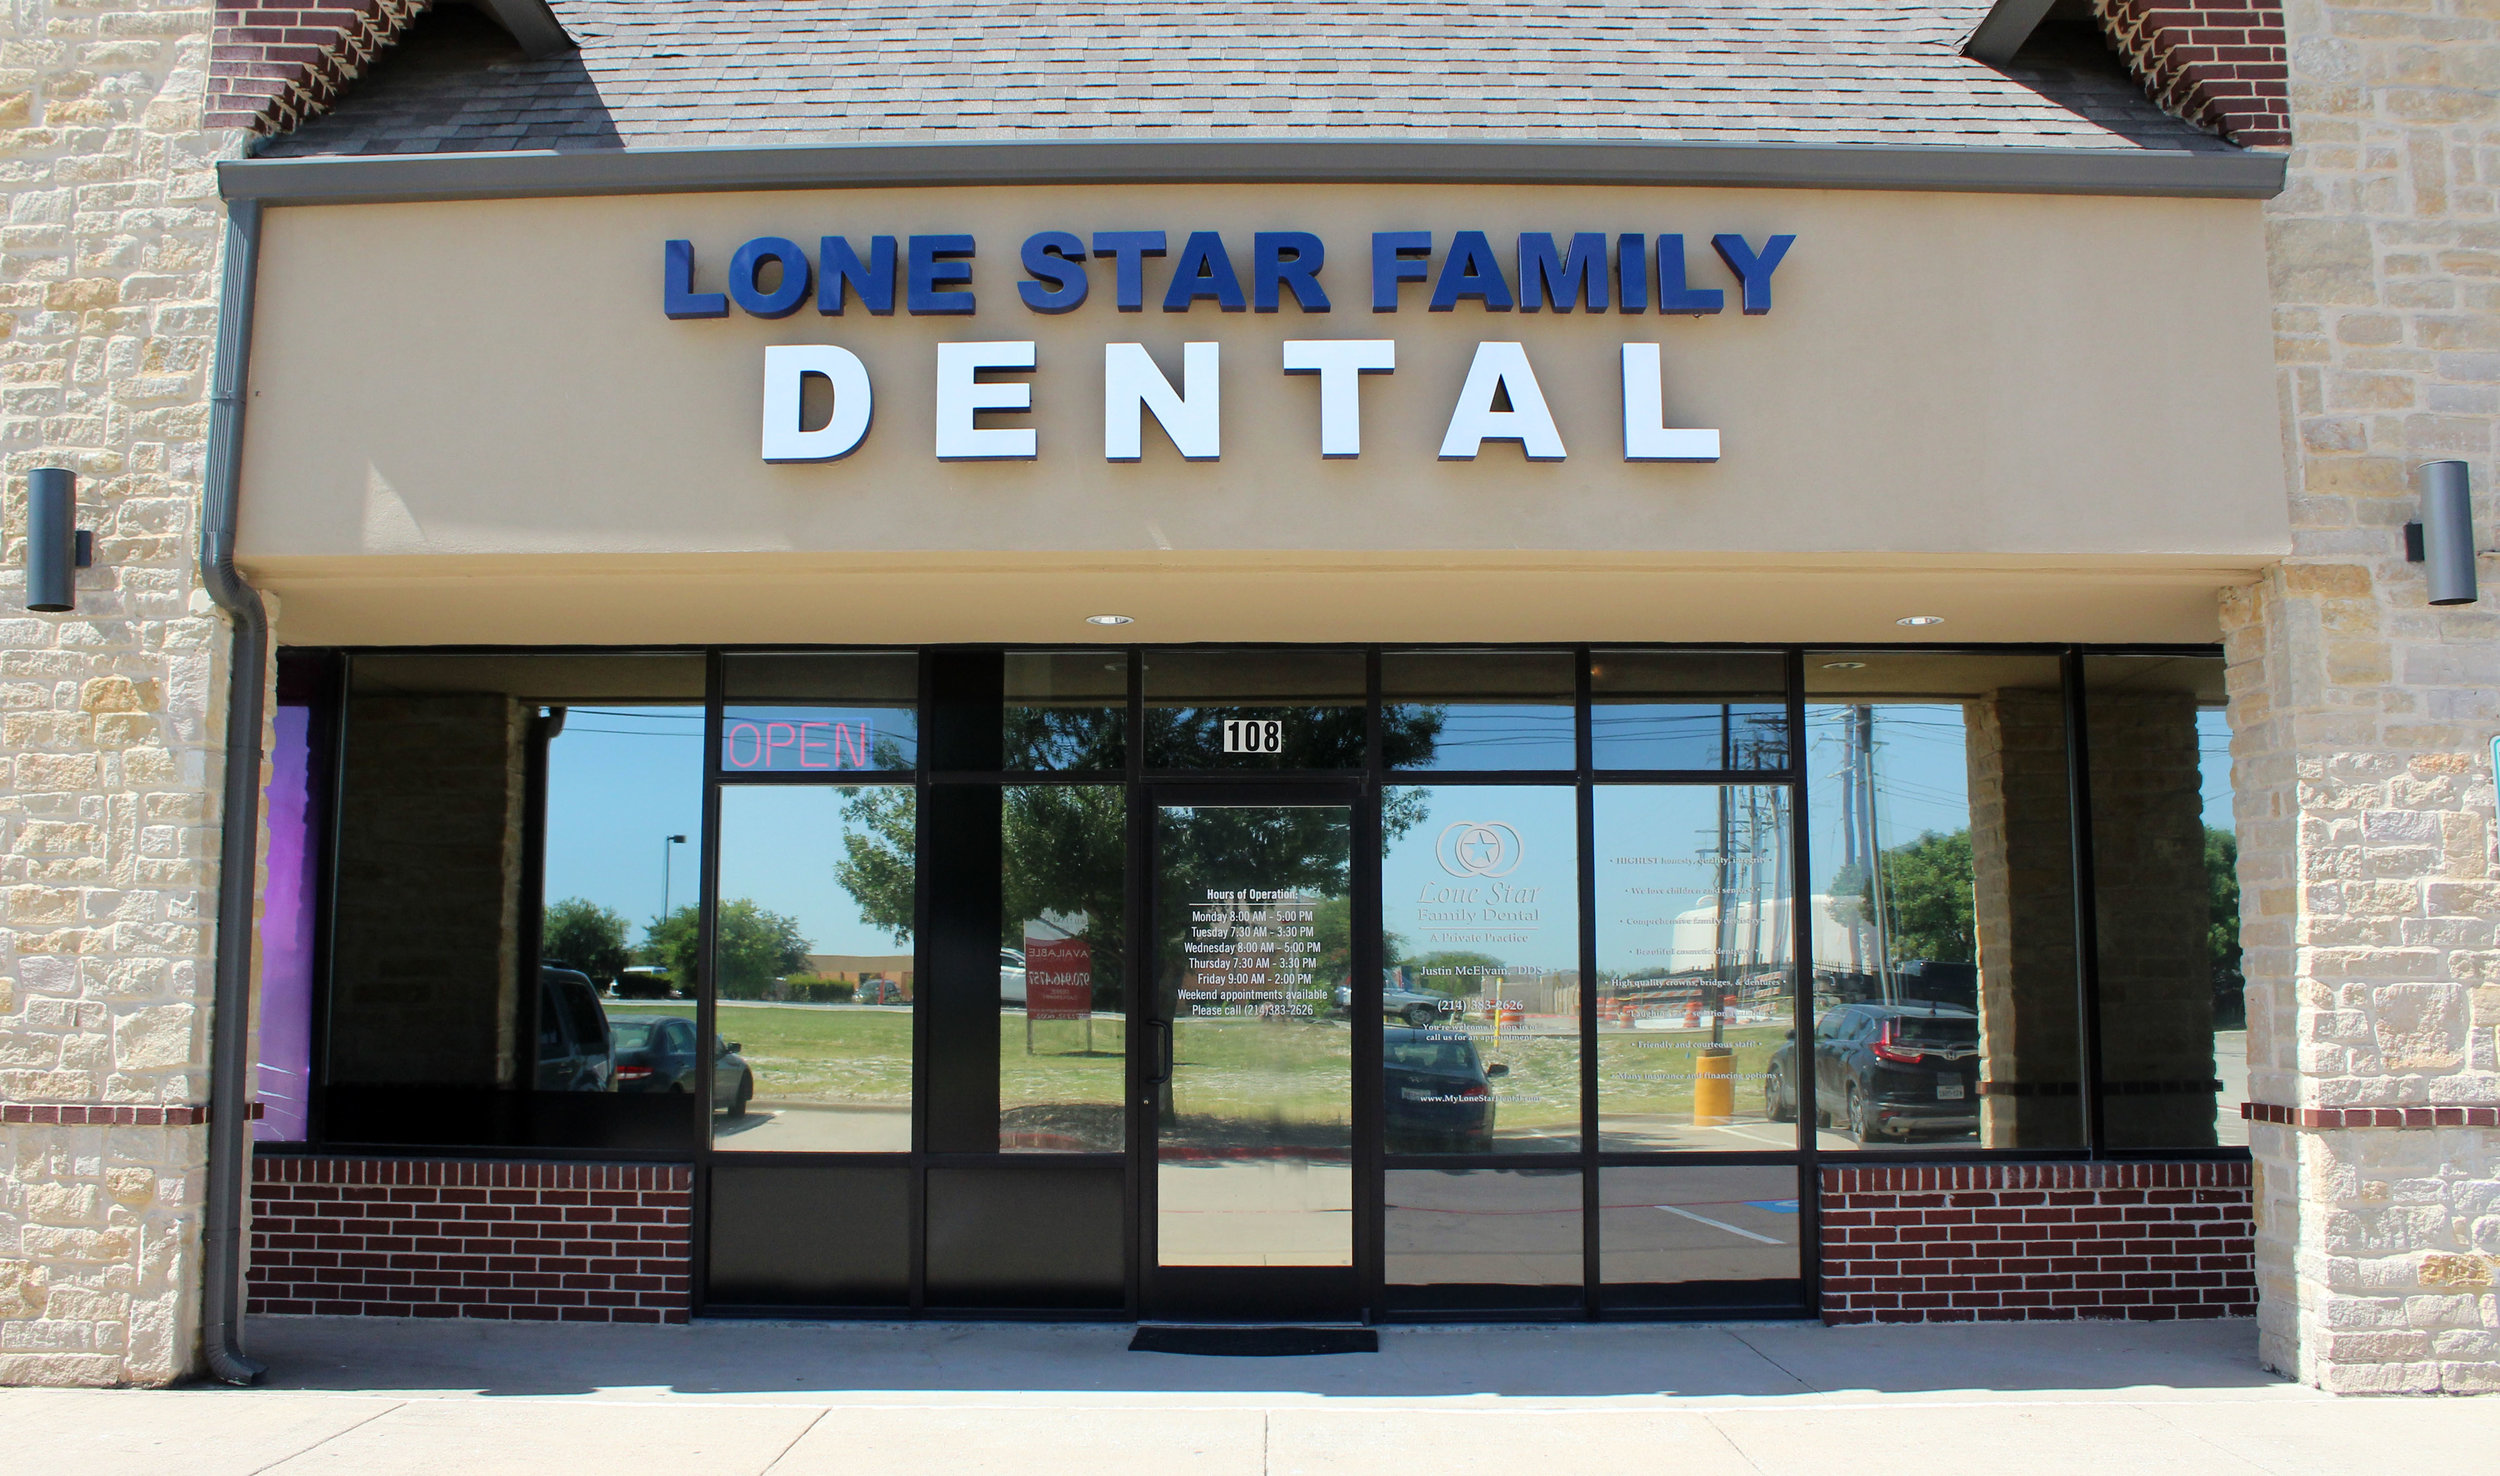 Lone Star Family Dental is located at 431 E. Stacy Rd, Suite 108, Fairview 75069.